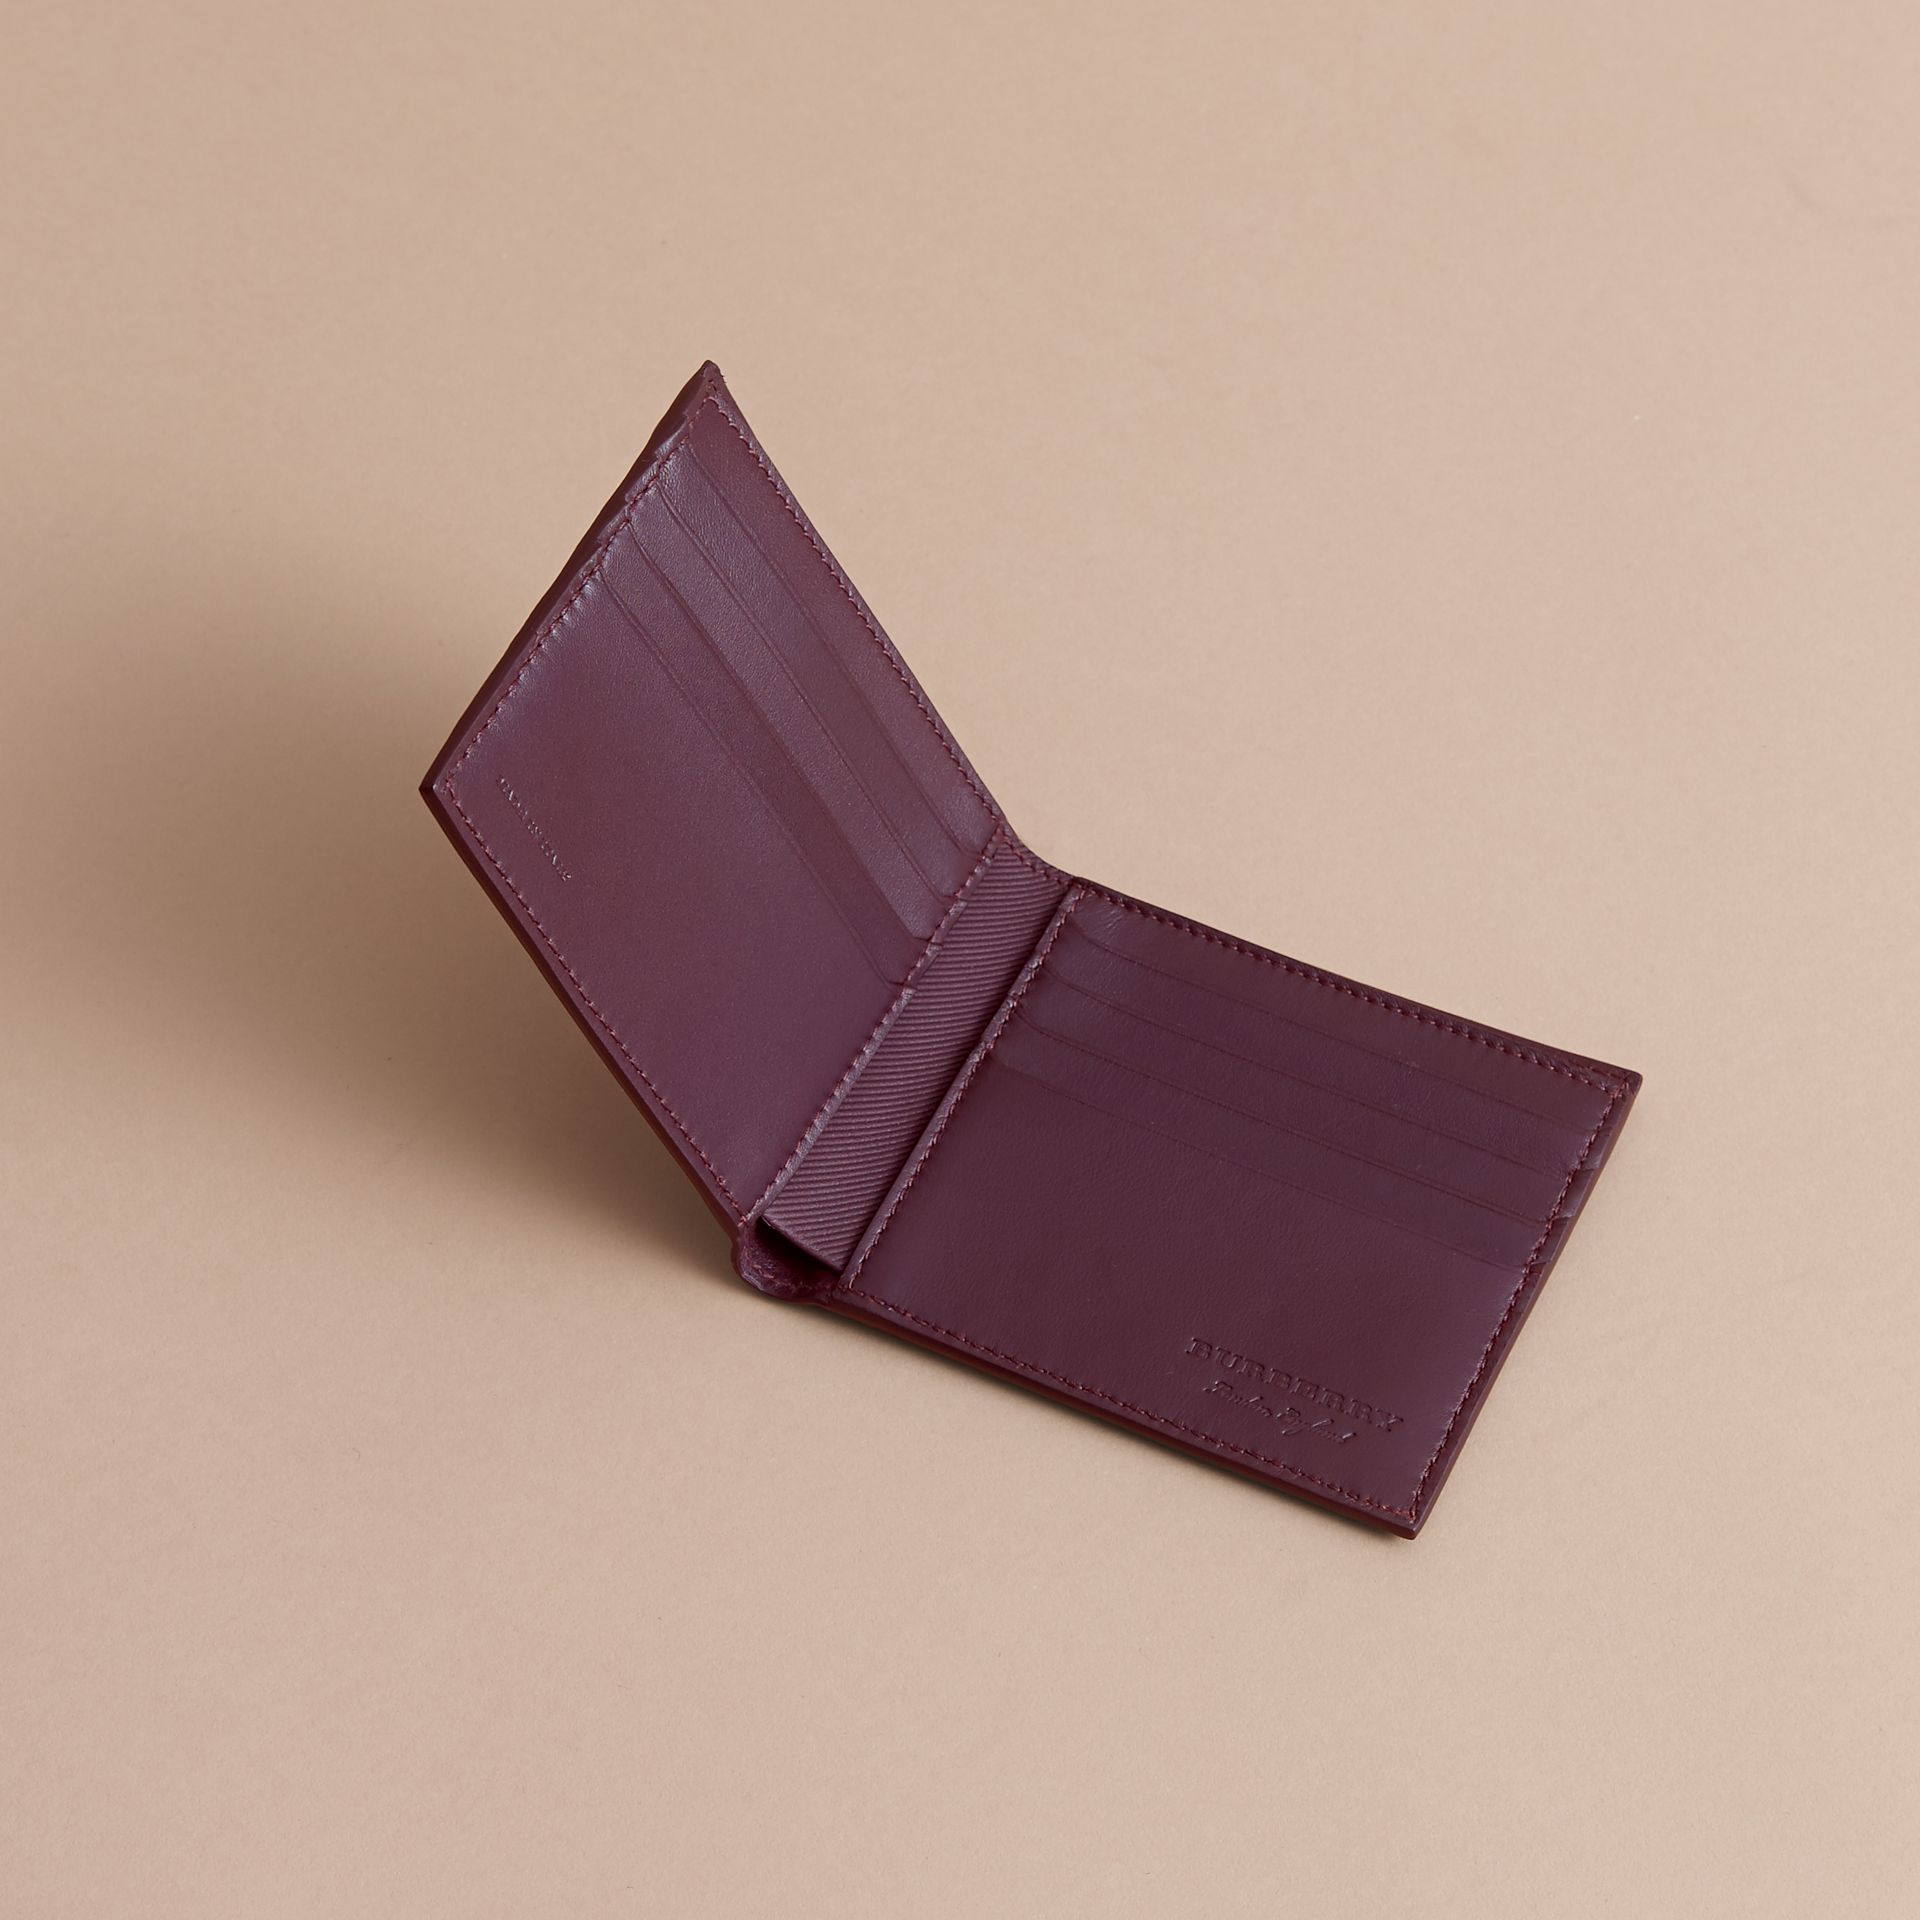 Trench Leather International Bifold Wallet in Wine - Men | Burberry Australia - gallery image 5